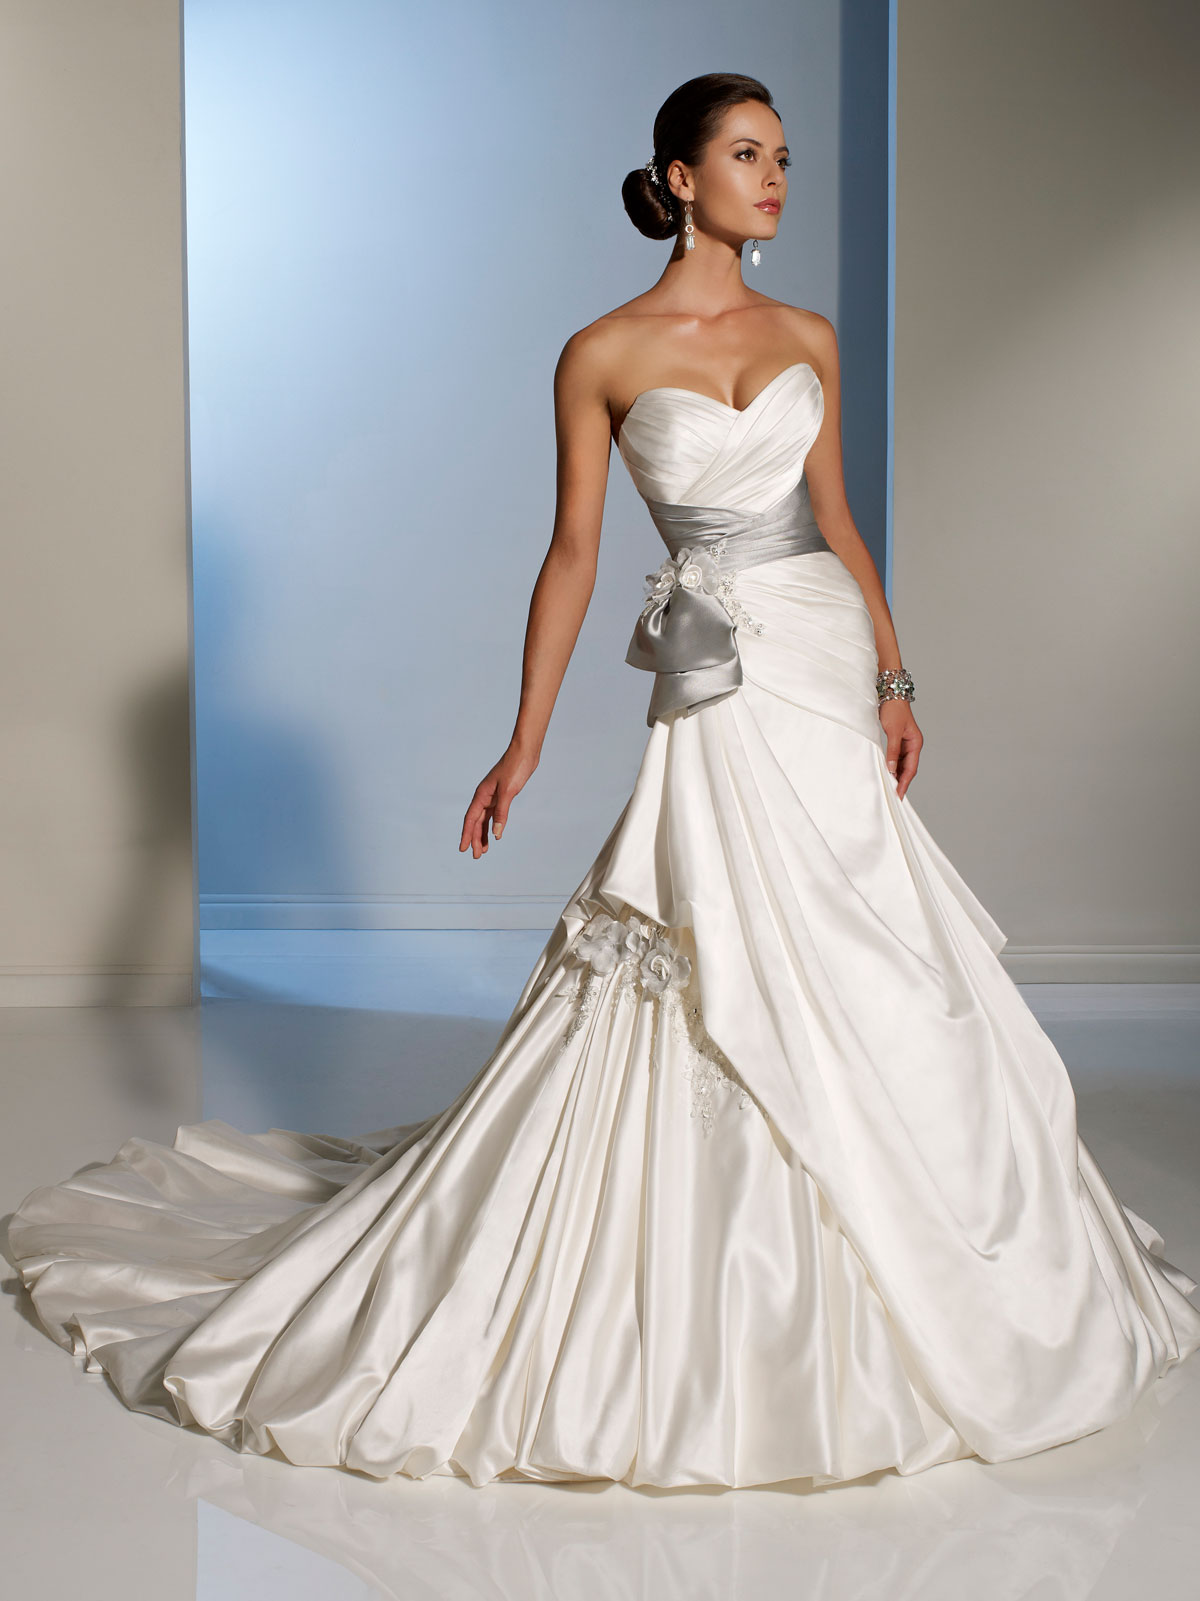 Side D Wedding Dress With Silver Sash